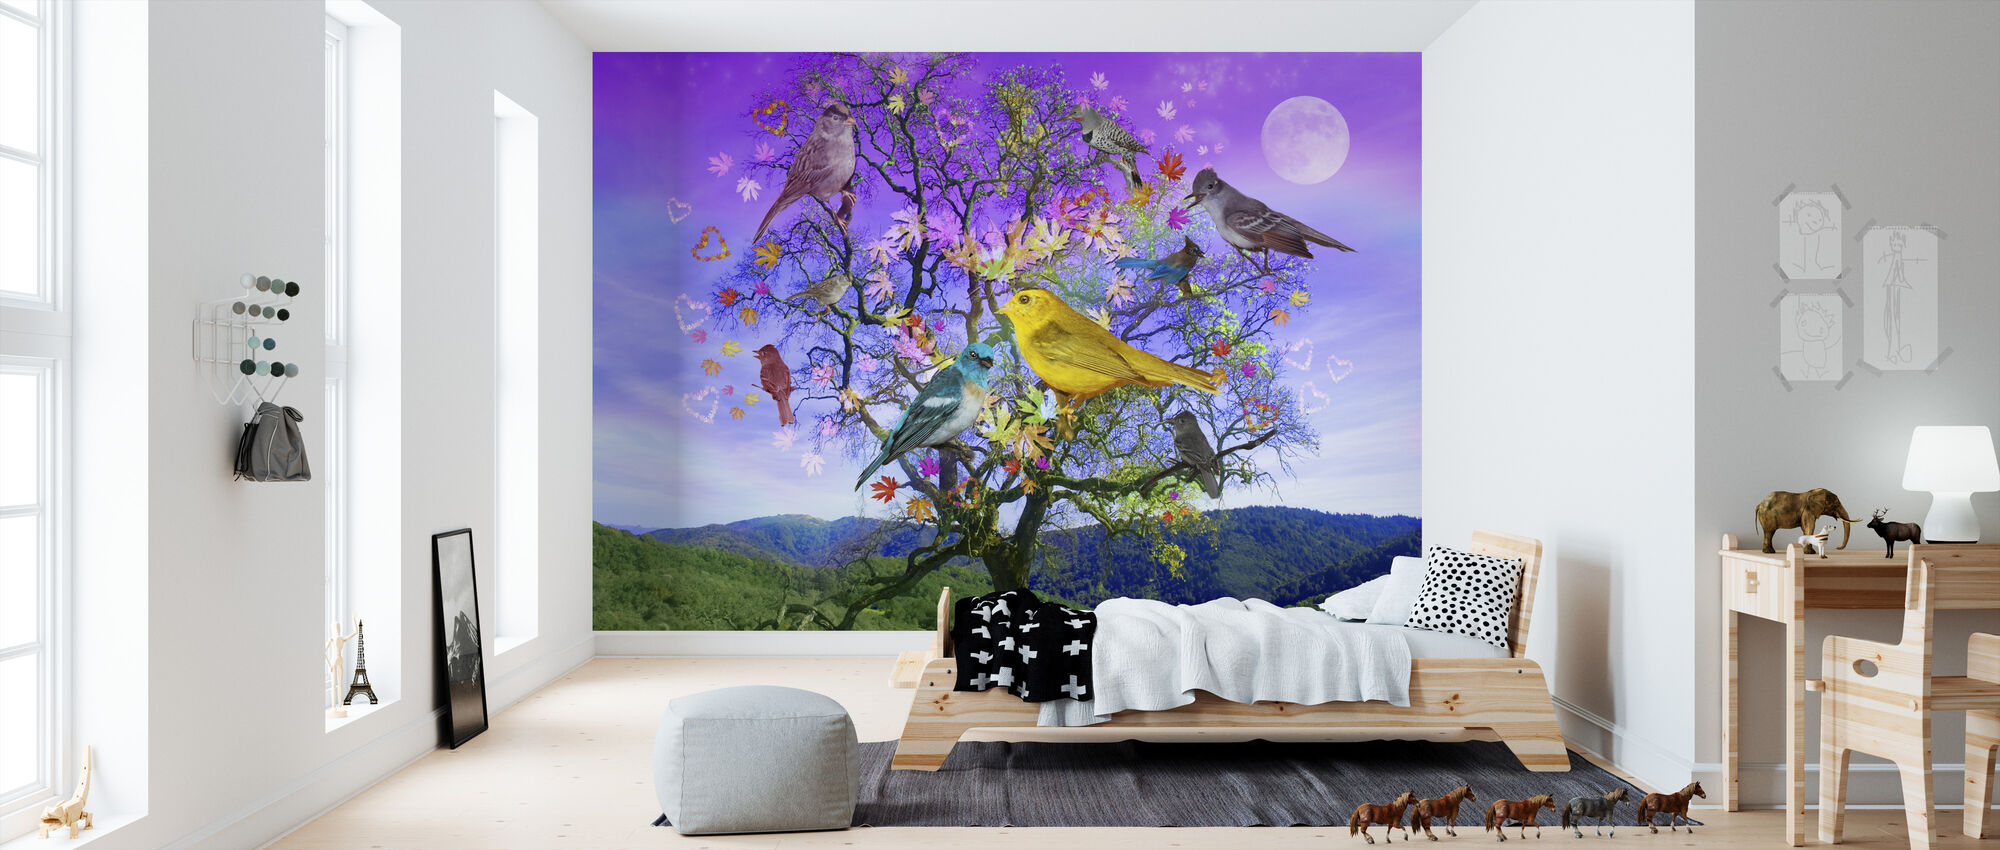 Tree of Happiness - Wallpaper - Kids Room